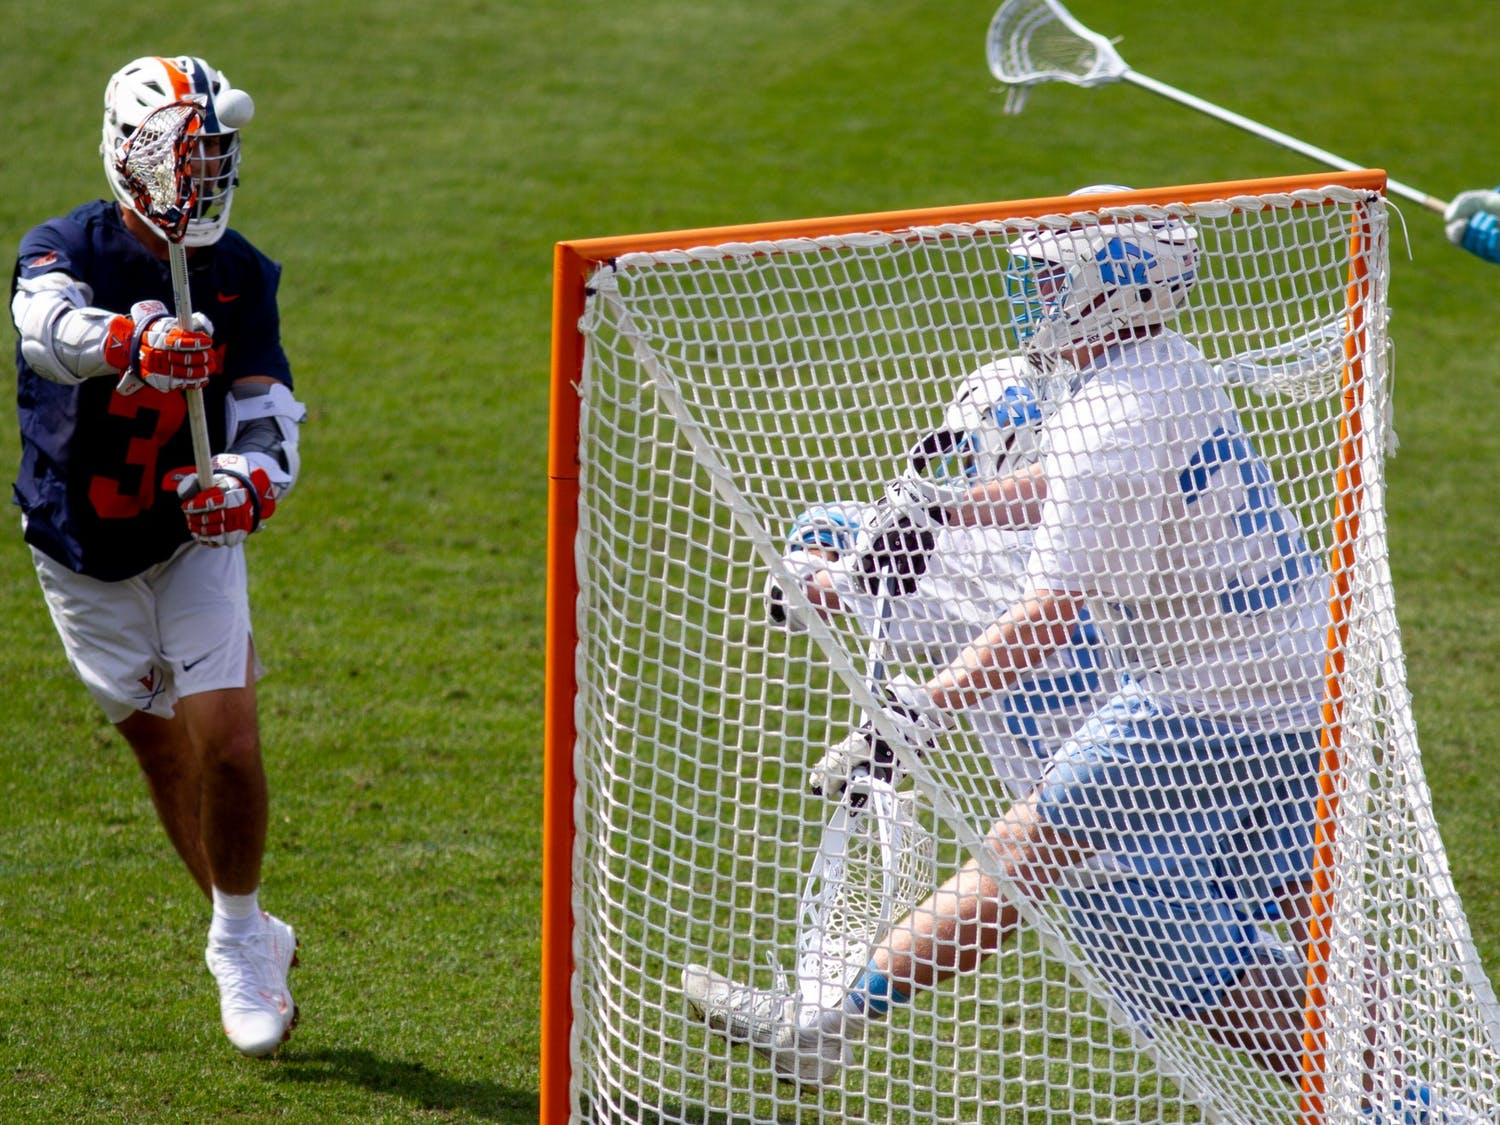 UVA senior attackman Ian Lavaino (3) attempts a shot during an 18-16 win over UNC at Dorrance Field on April 10, 2021.